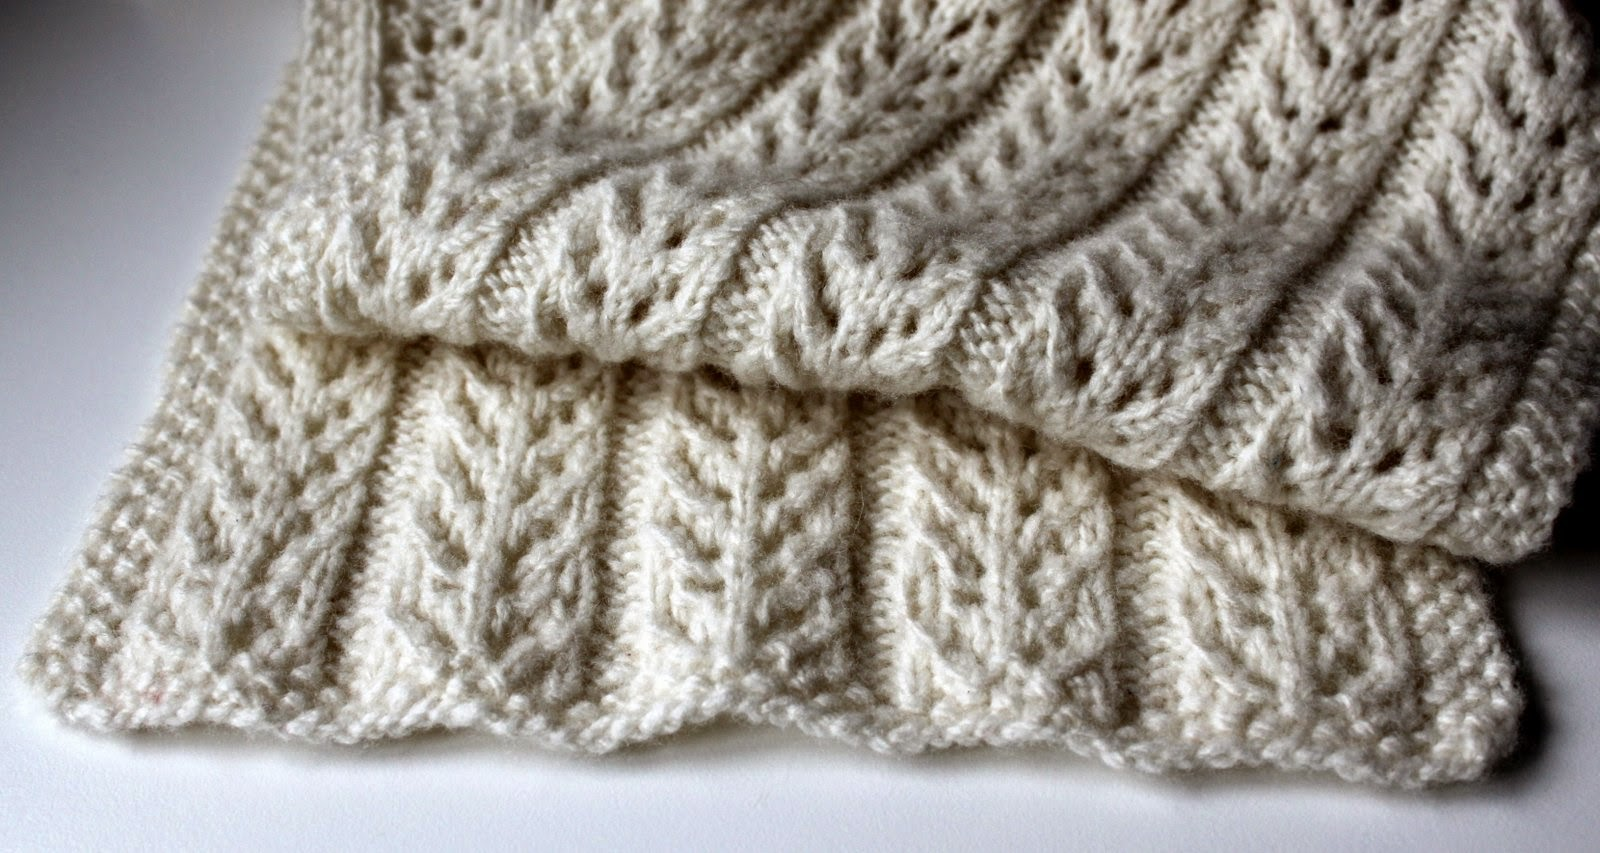 Hand Knitted Things: Hat Mittens and Scarf